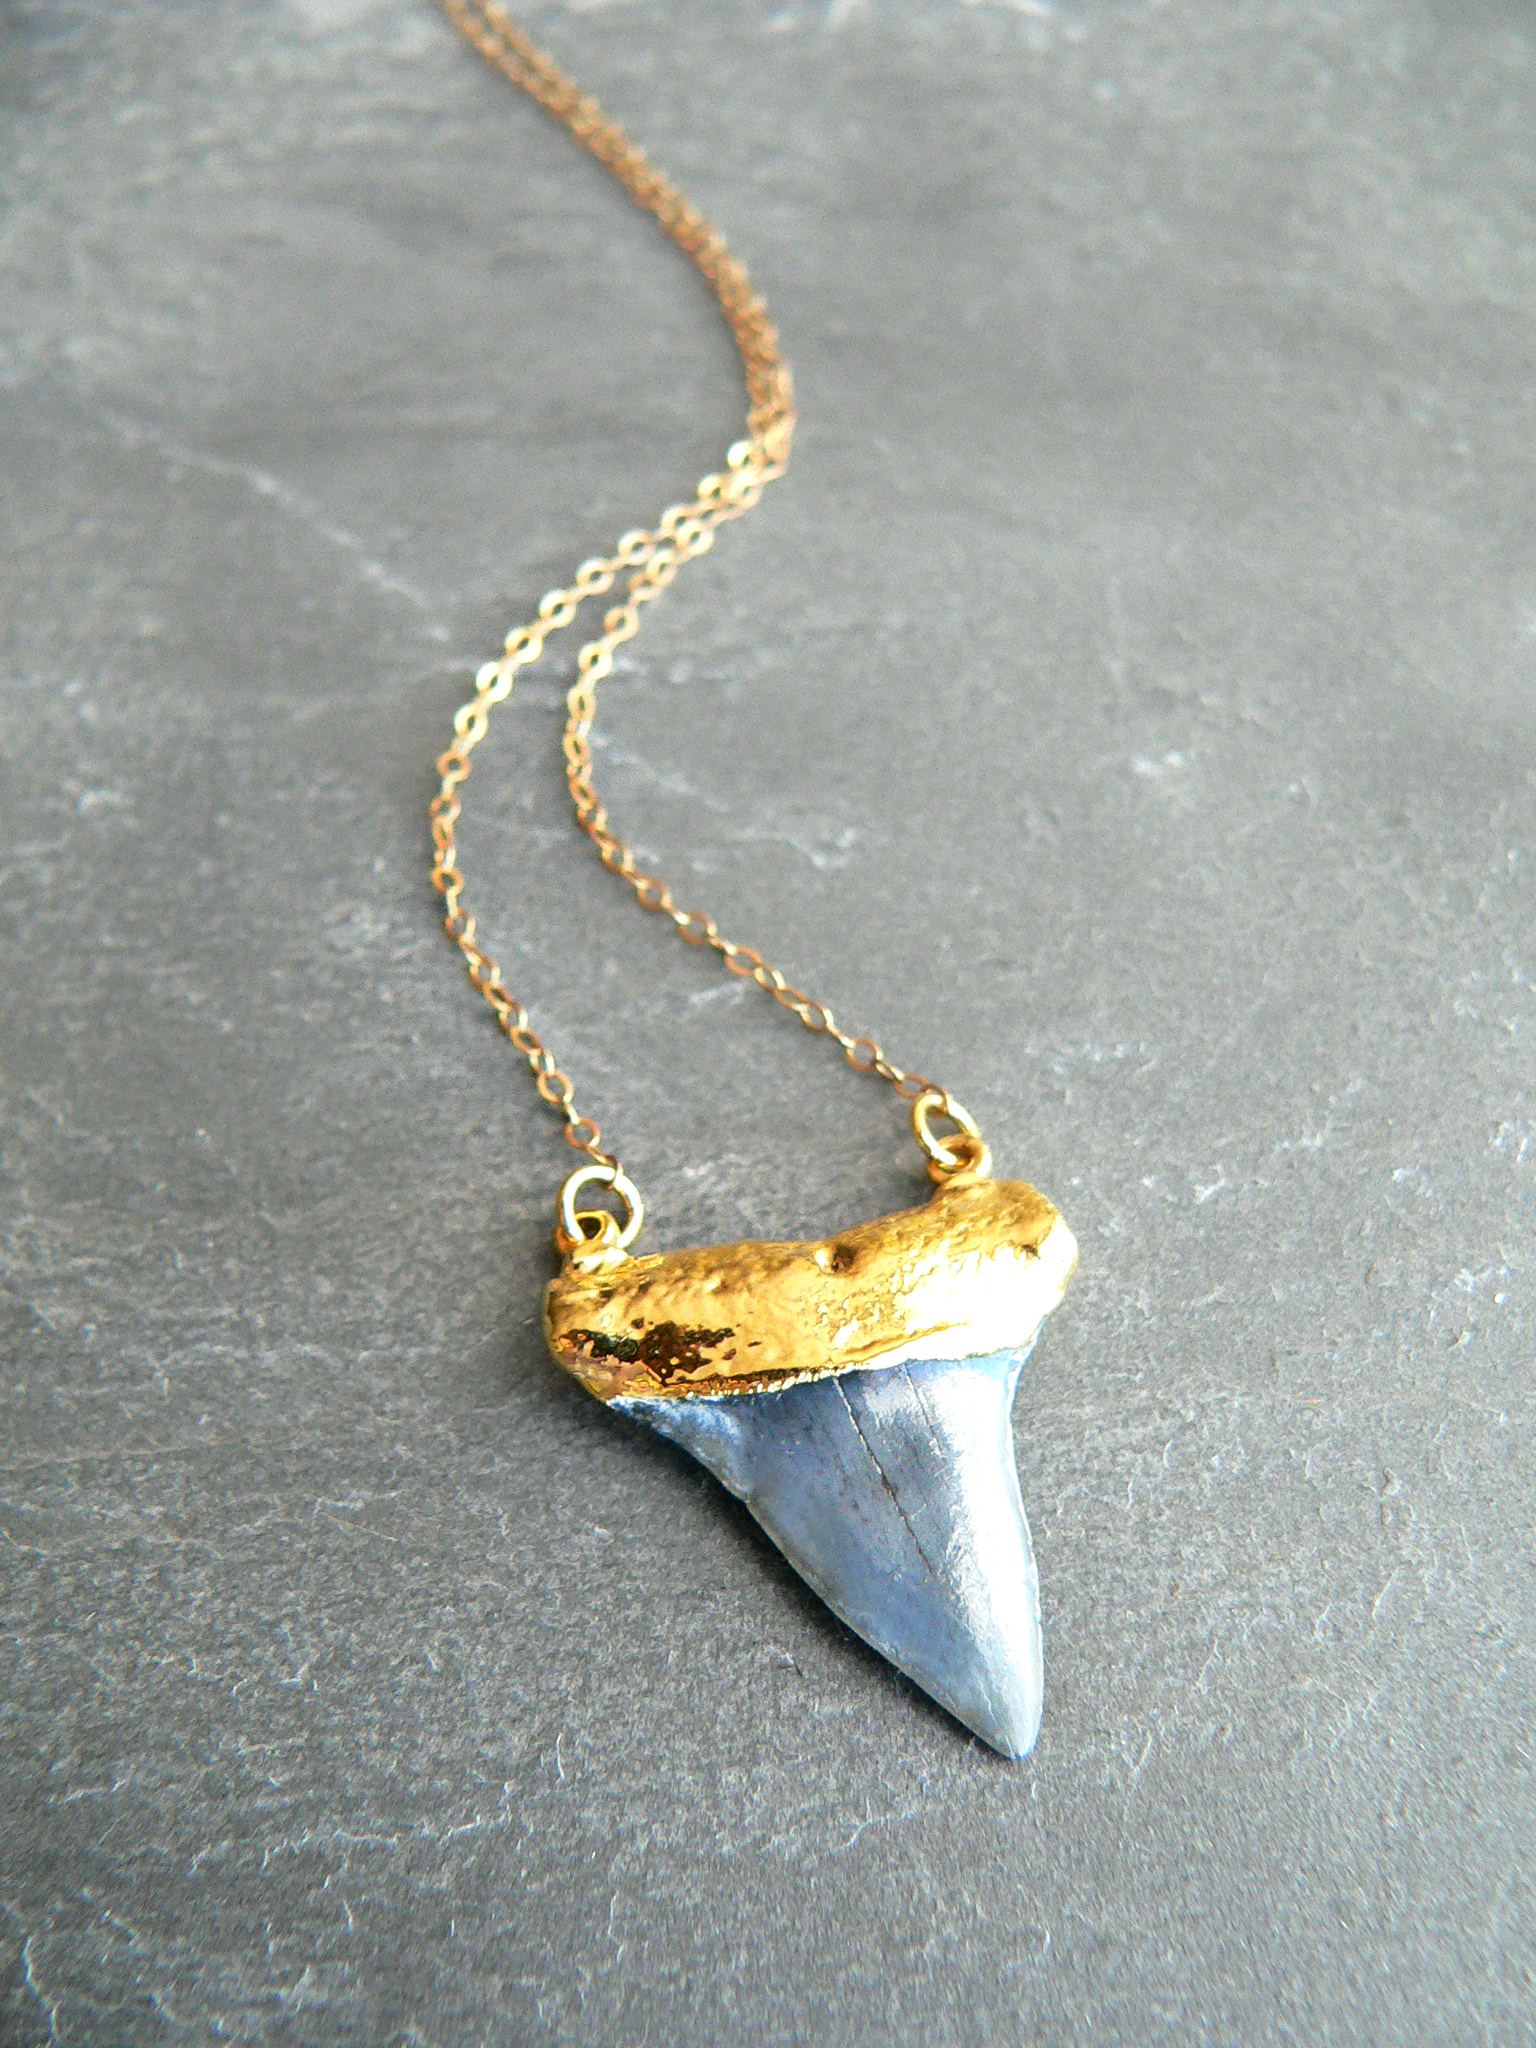 REAL SHARKTOOTH NECKLACE